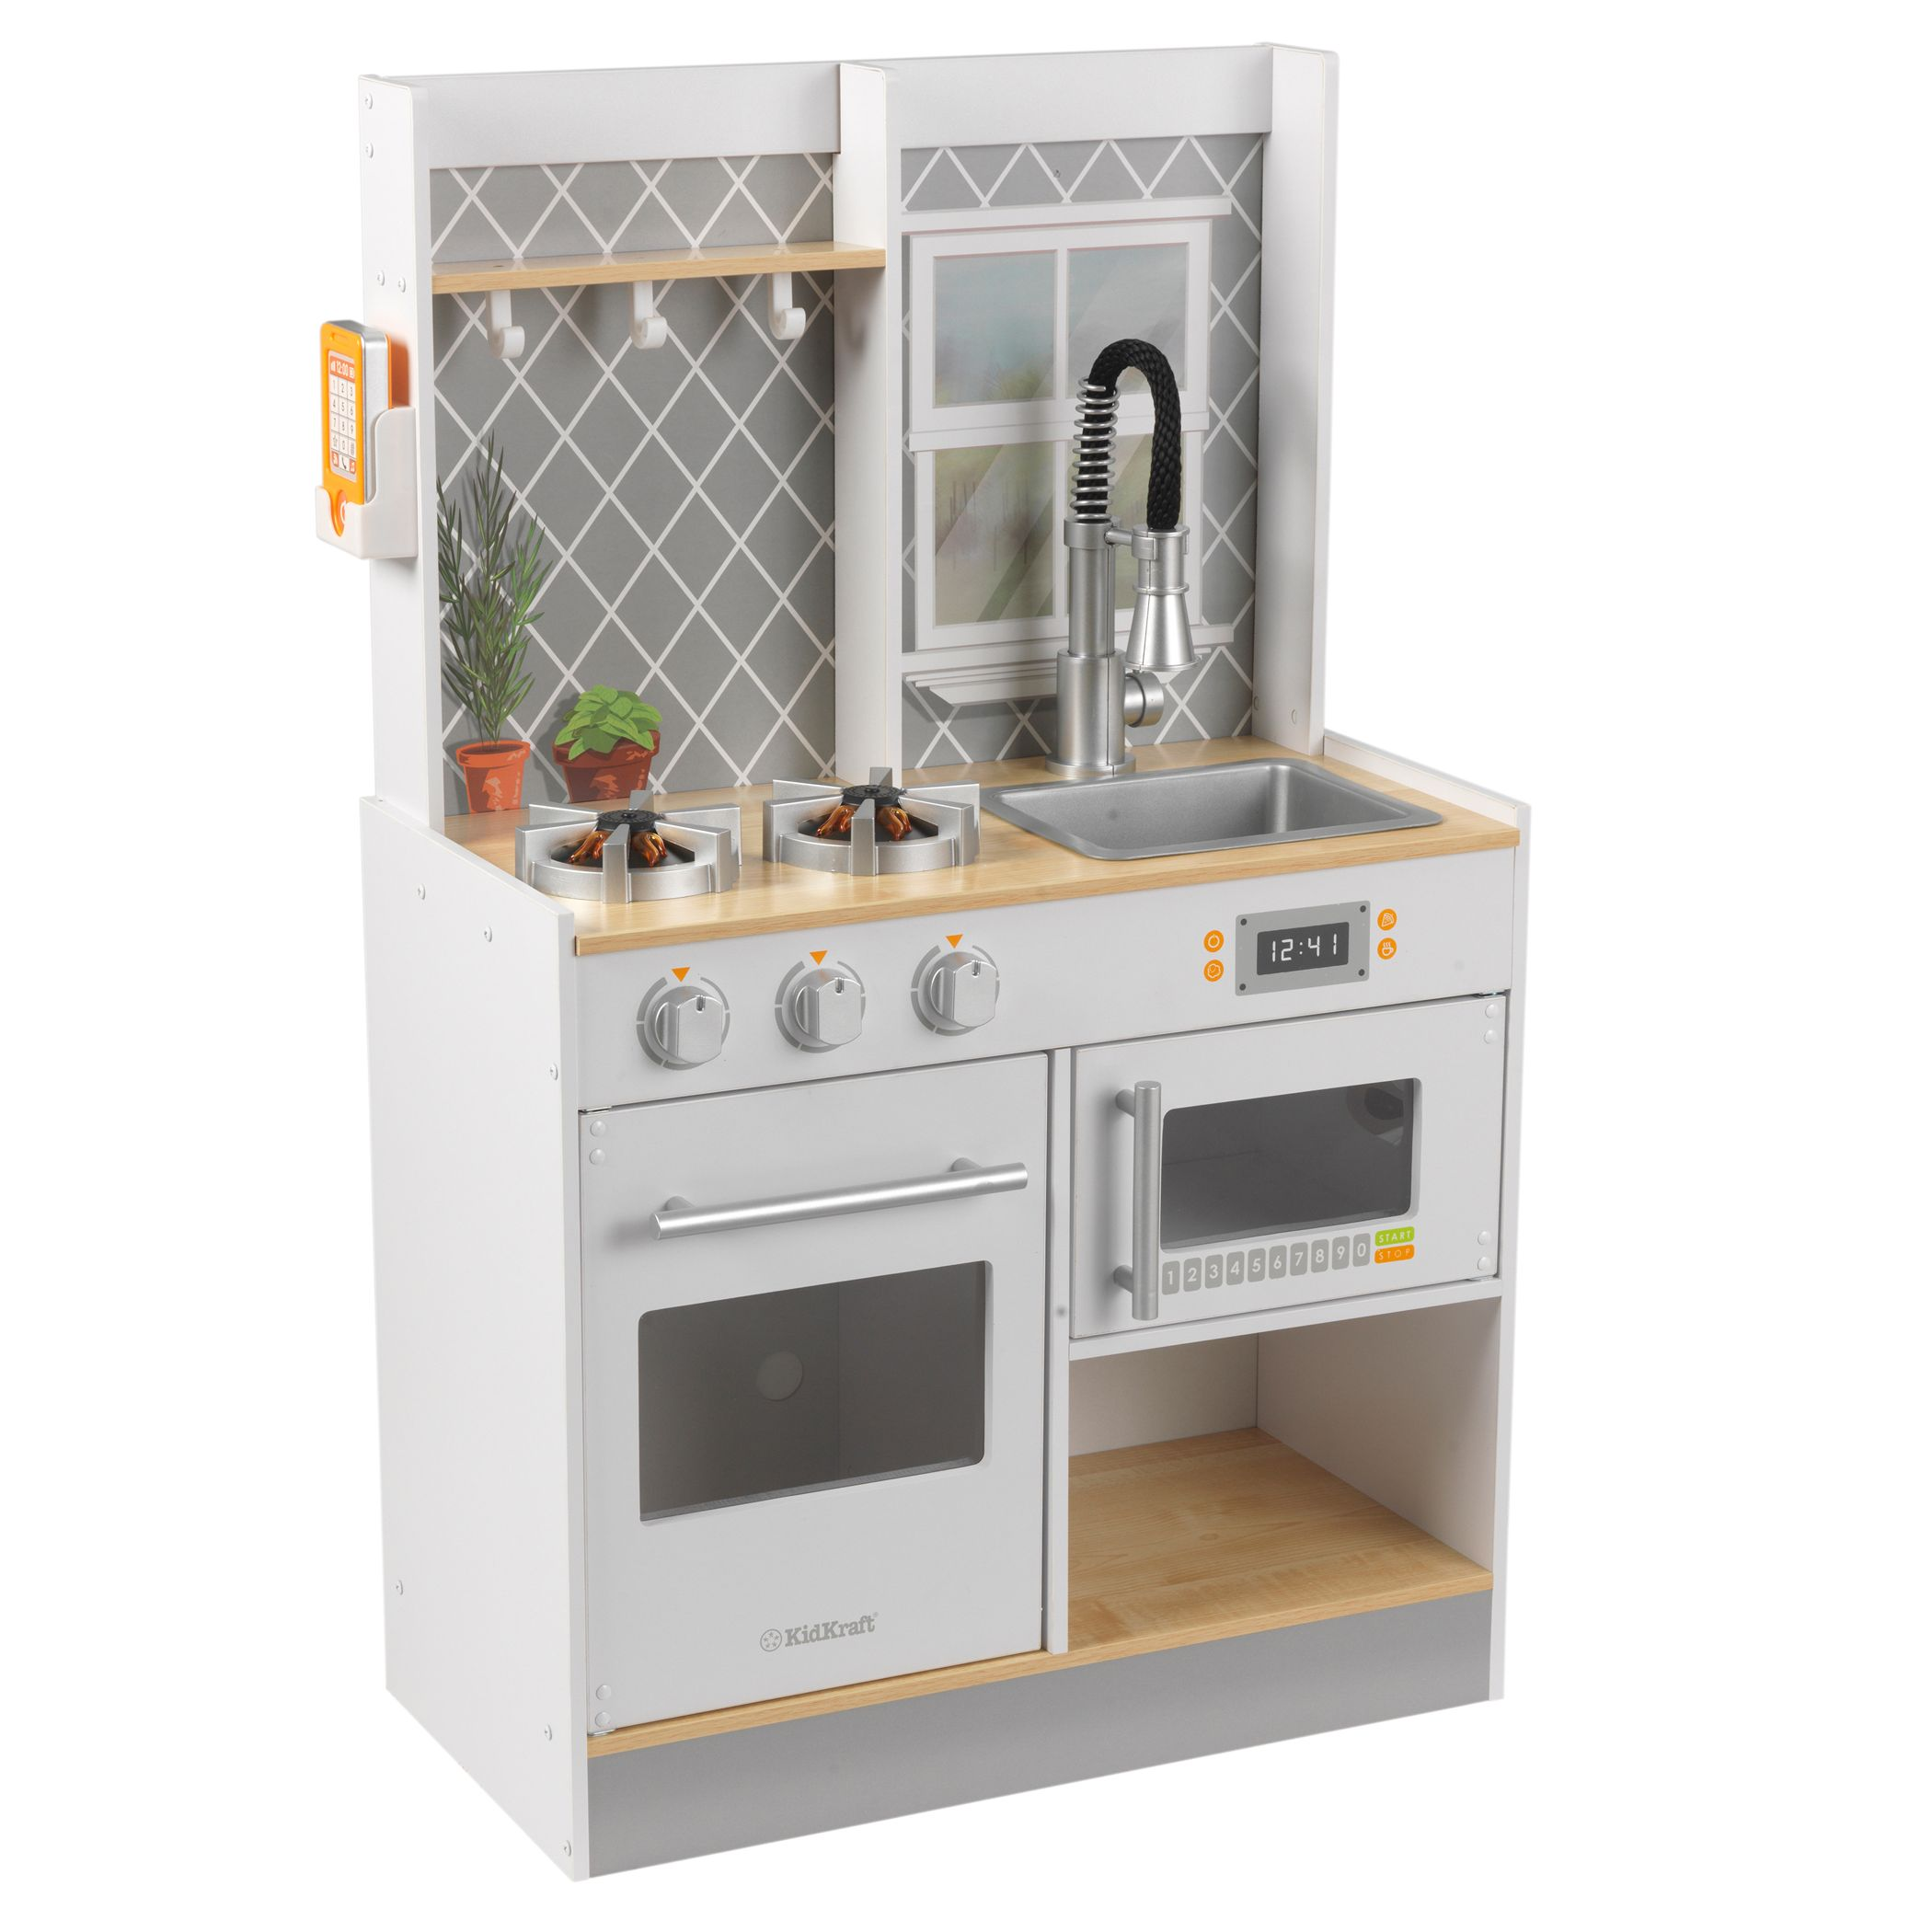 KidKraft Letu0027s Cook Wooden Play Kitchen